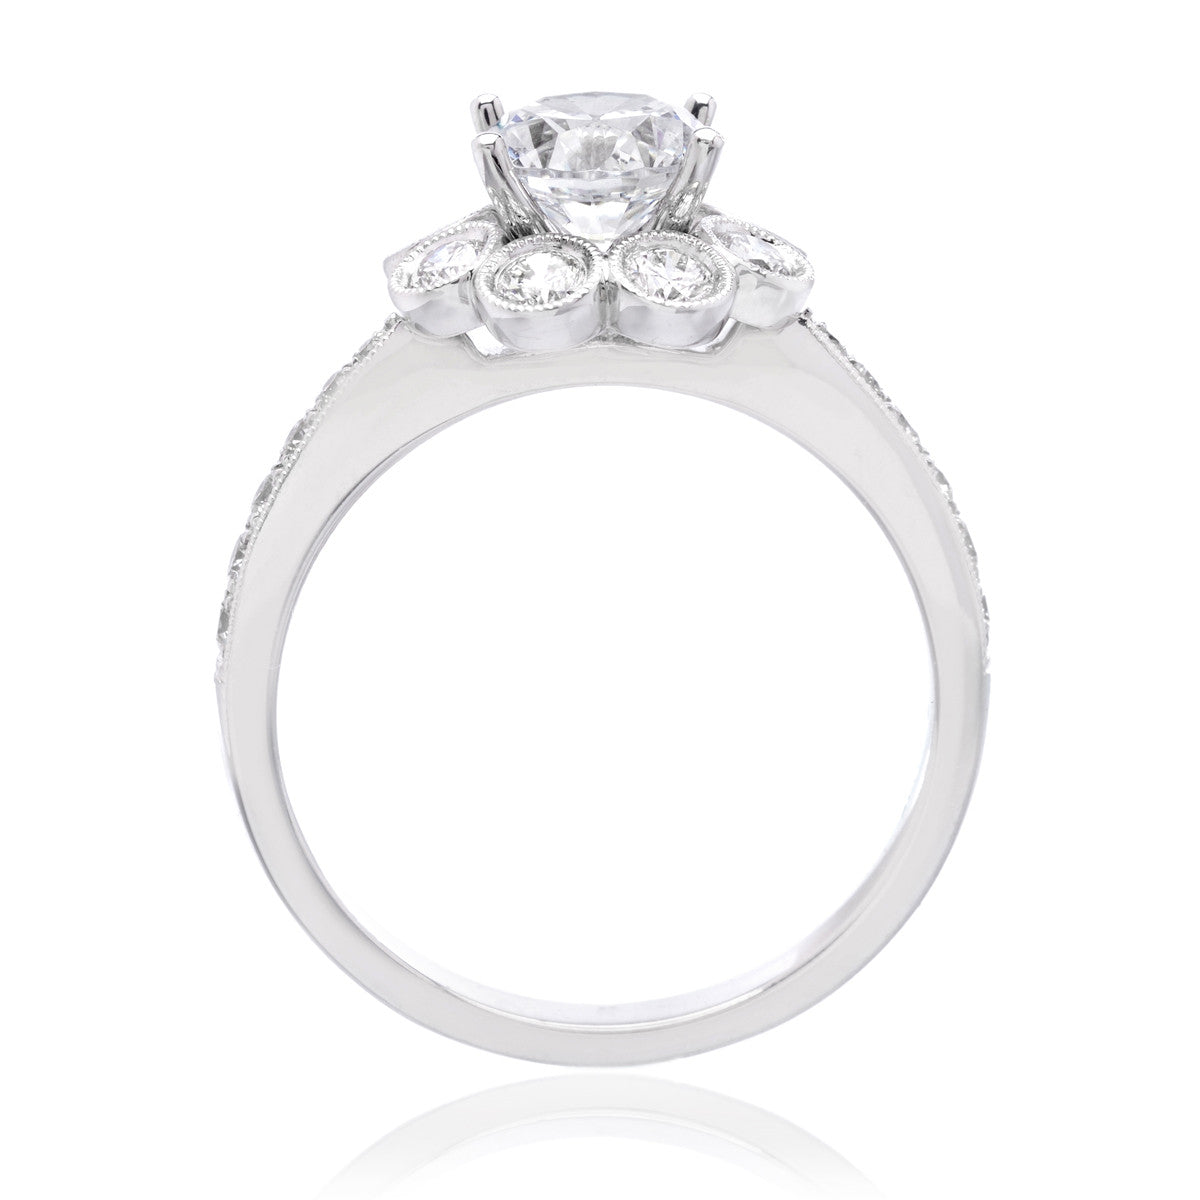 14K White Gold Vintage Floral Engagement Ring Setting